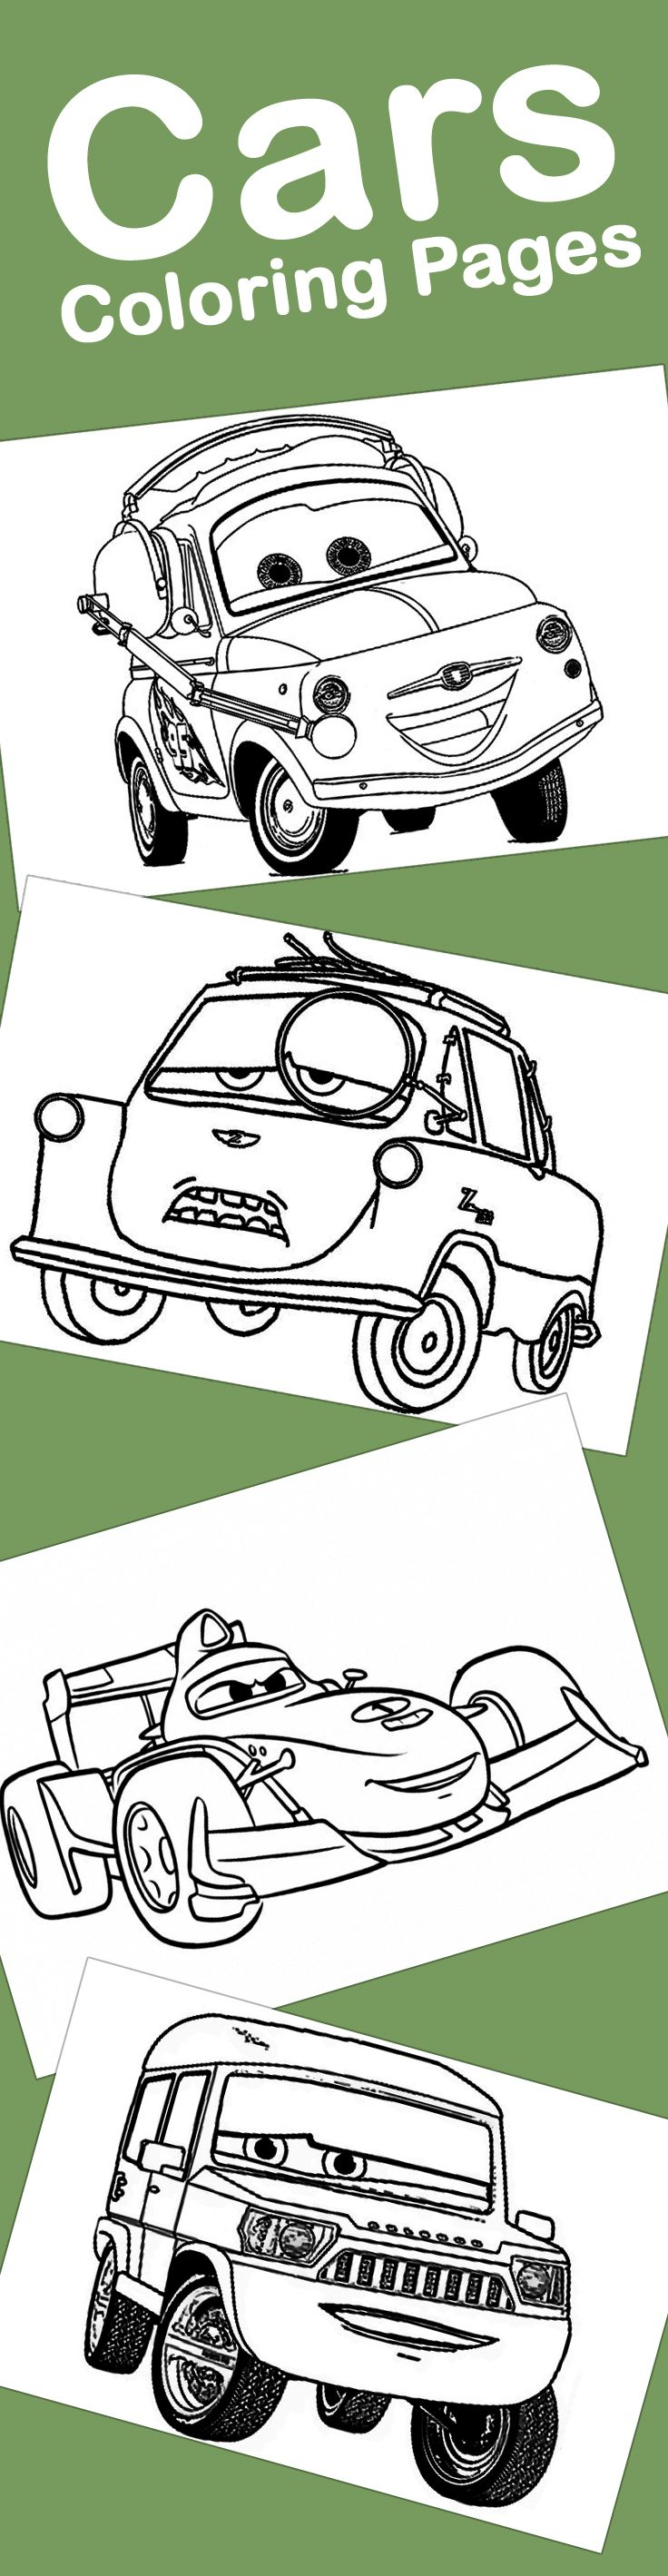 Disney cars coloring pages online - Top 10 Colorful Cars Coloring Pages For Your Little One Here S Where You Can Make